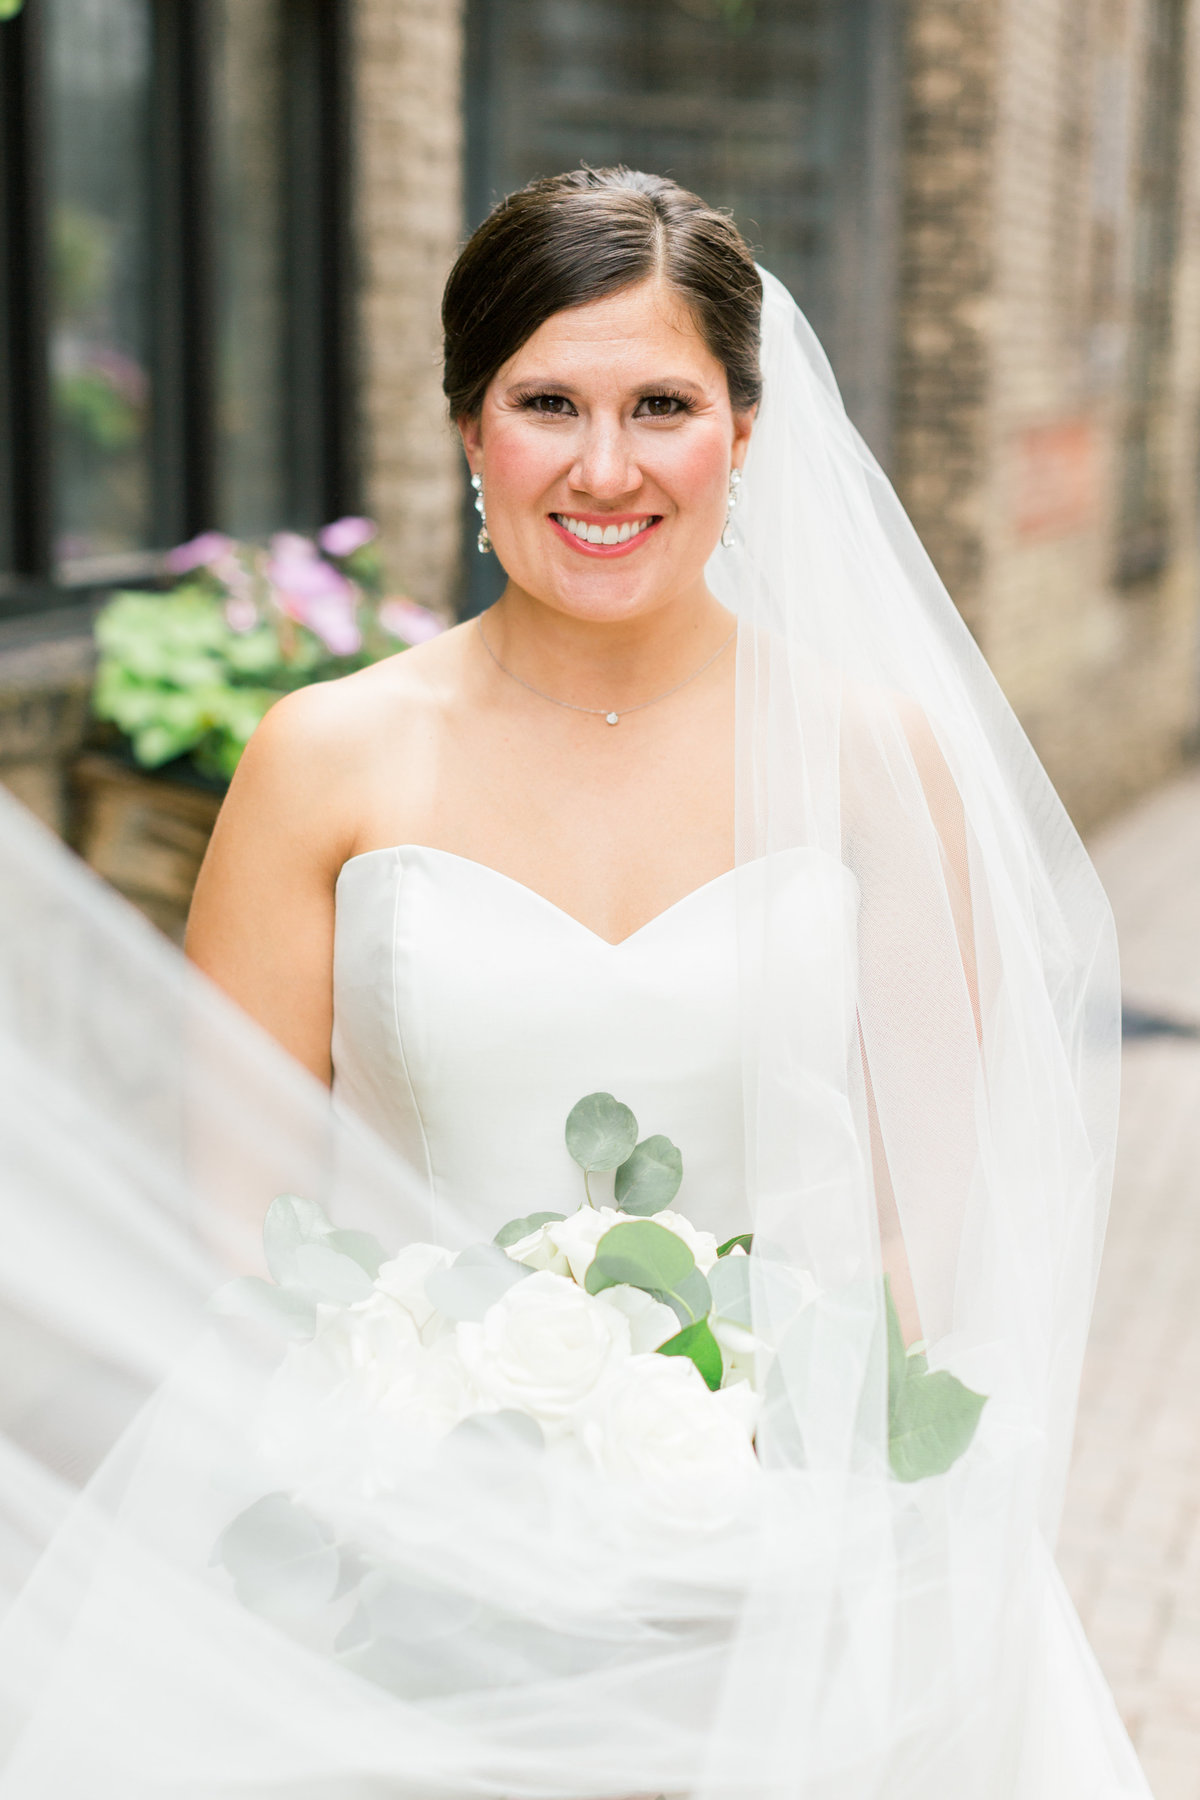 lindsey-taylor-photography-minneapolis-st-peters-basilica-wedding-photographer5